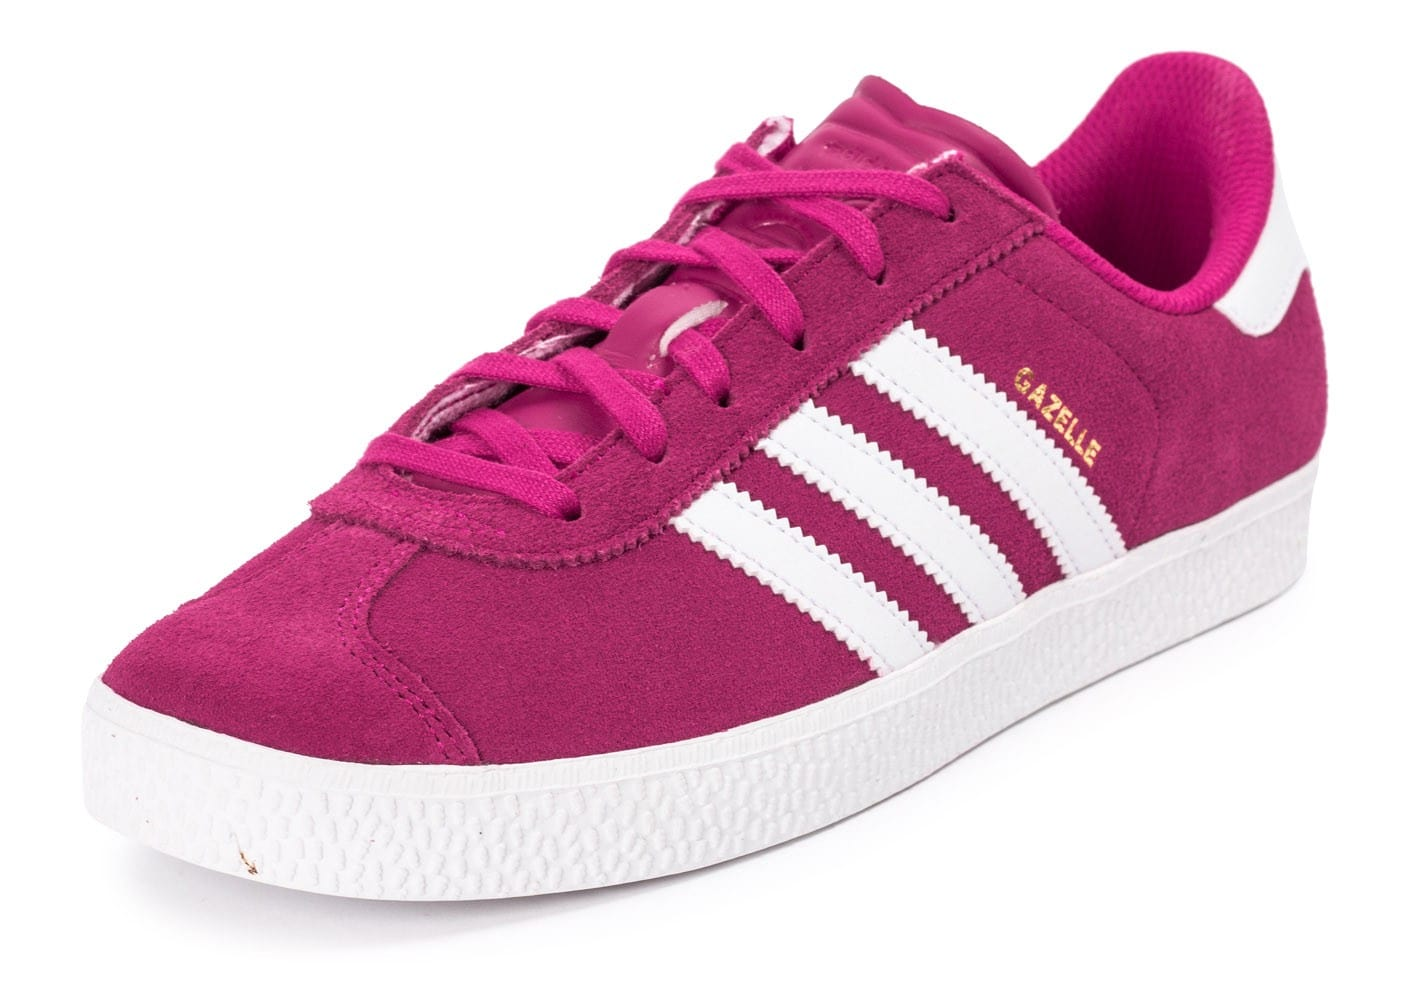 soldes adidas gazelle 2 rose chaussures adidas chausport. Black Bedroom Furniture Sets. Home Design Ideas